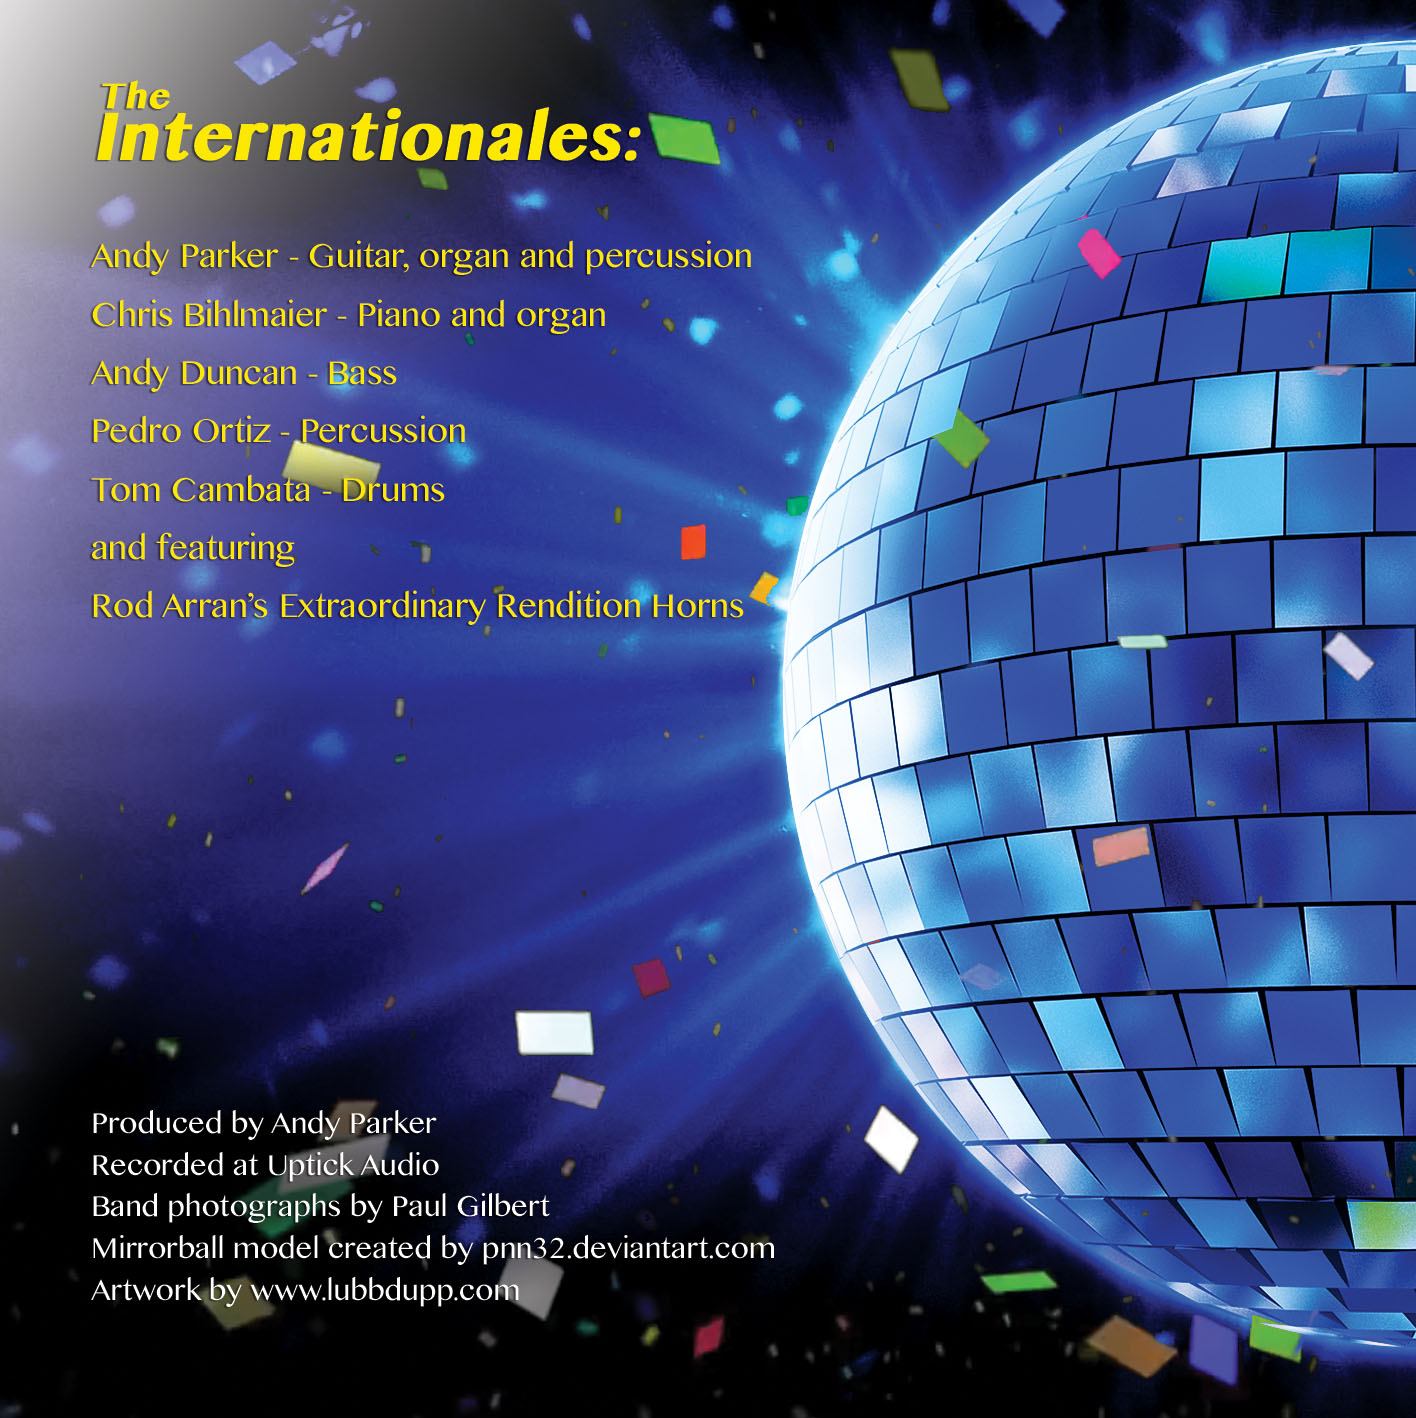 Andy Parker and the Internationales - MIRRORBALL rear cover